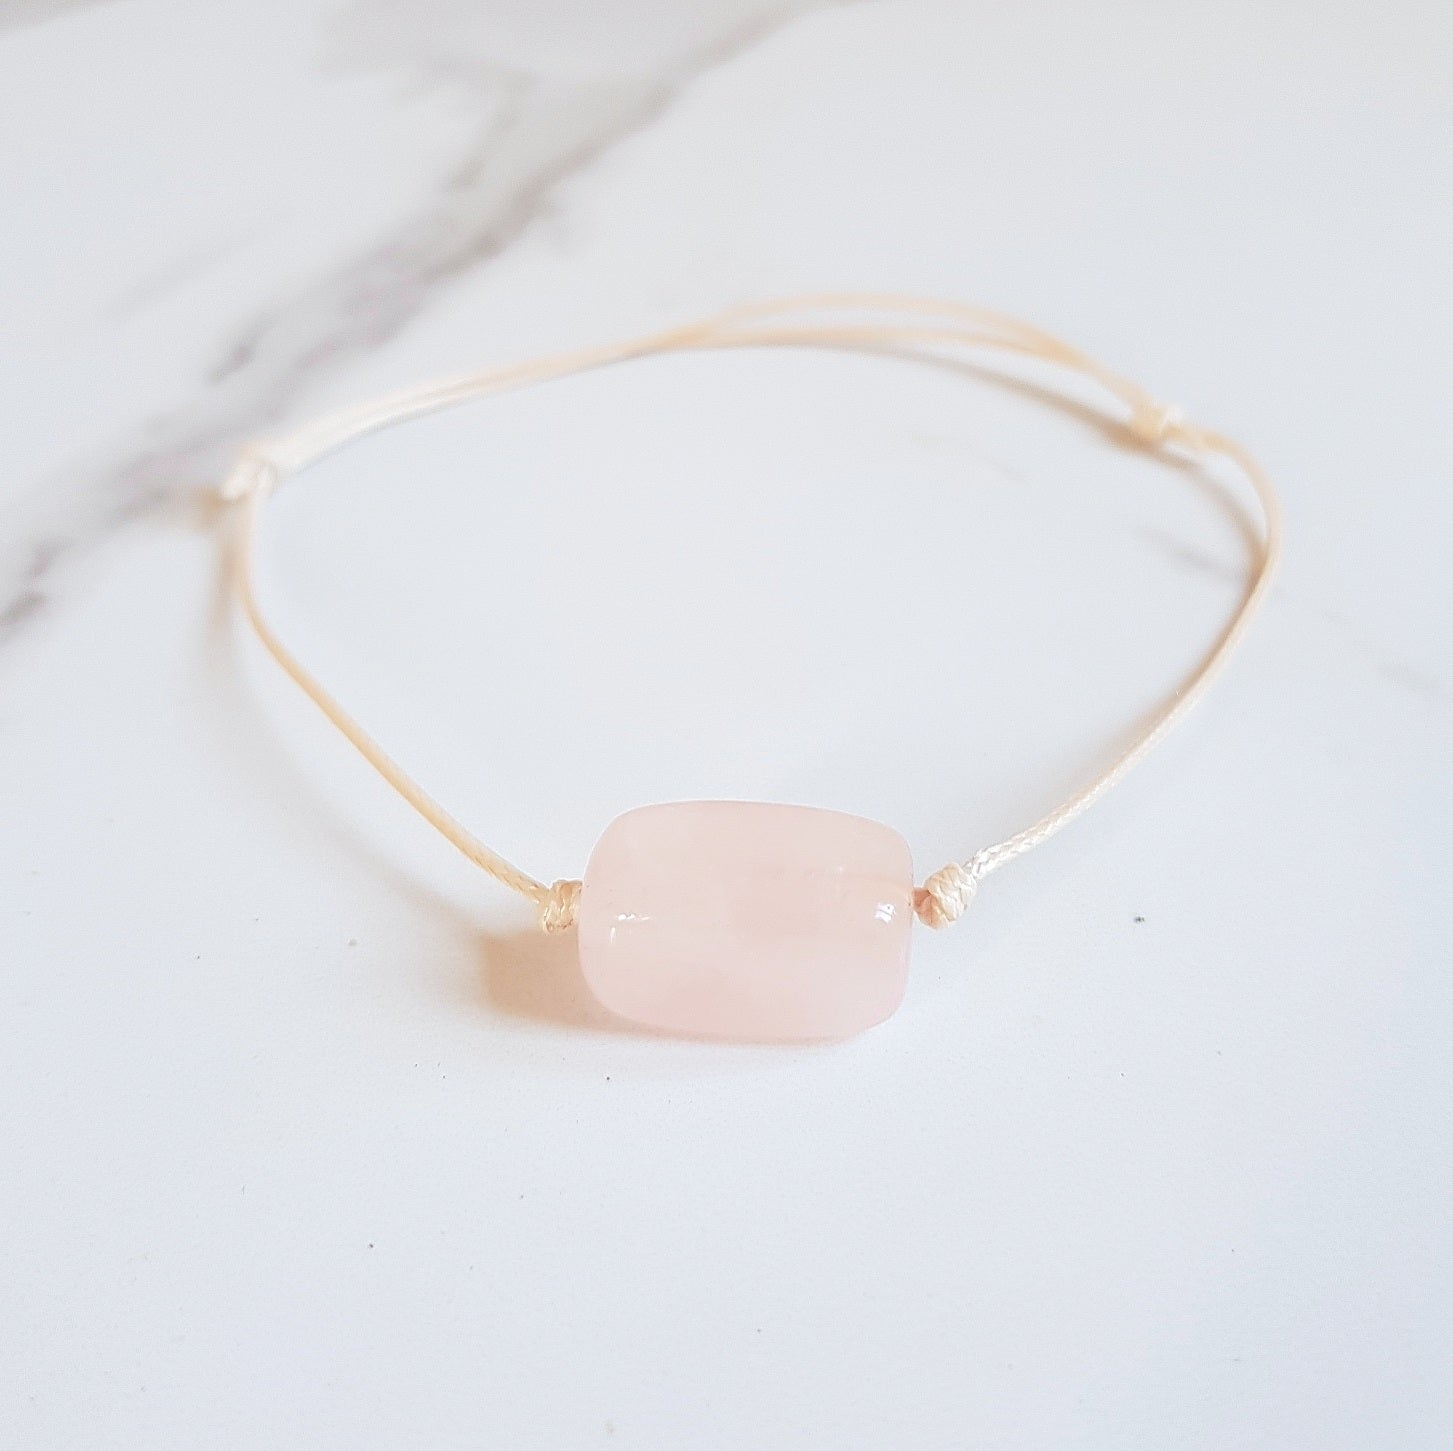 Gemstone Anklet - Rose Quartz